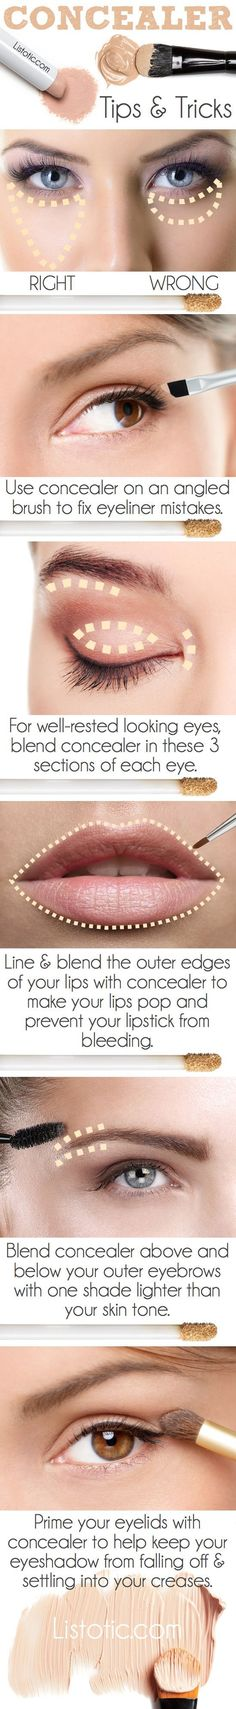 17 Effective Tips for Concealing Acne Scars - Trend To Wear